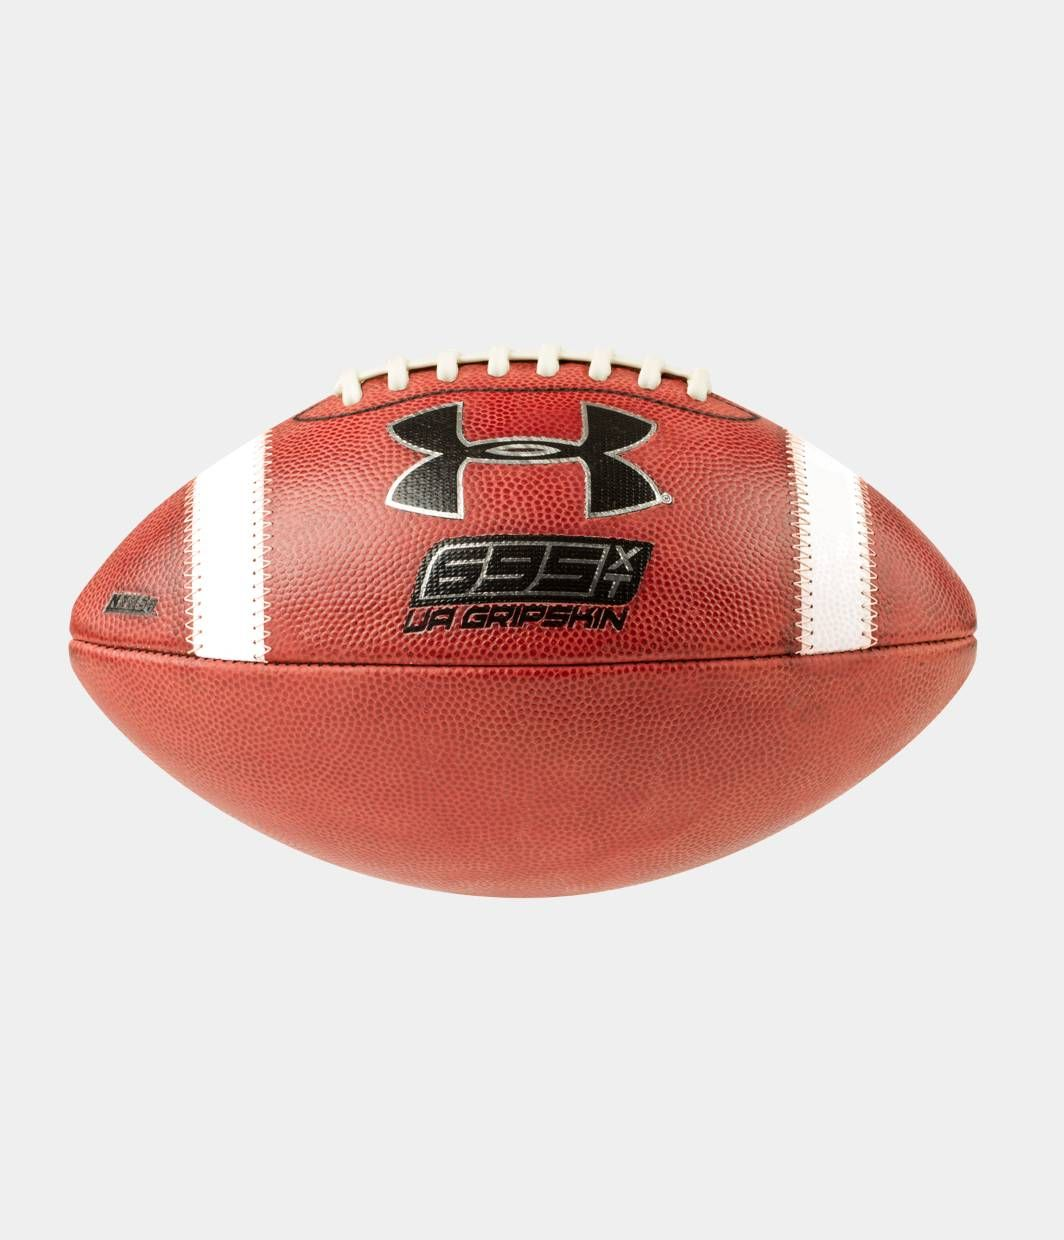 Ua Notre Dame 695xt Leather Game Ball Football Under Armour Us